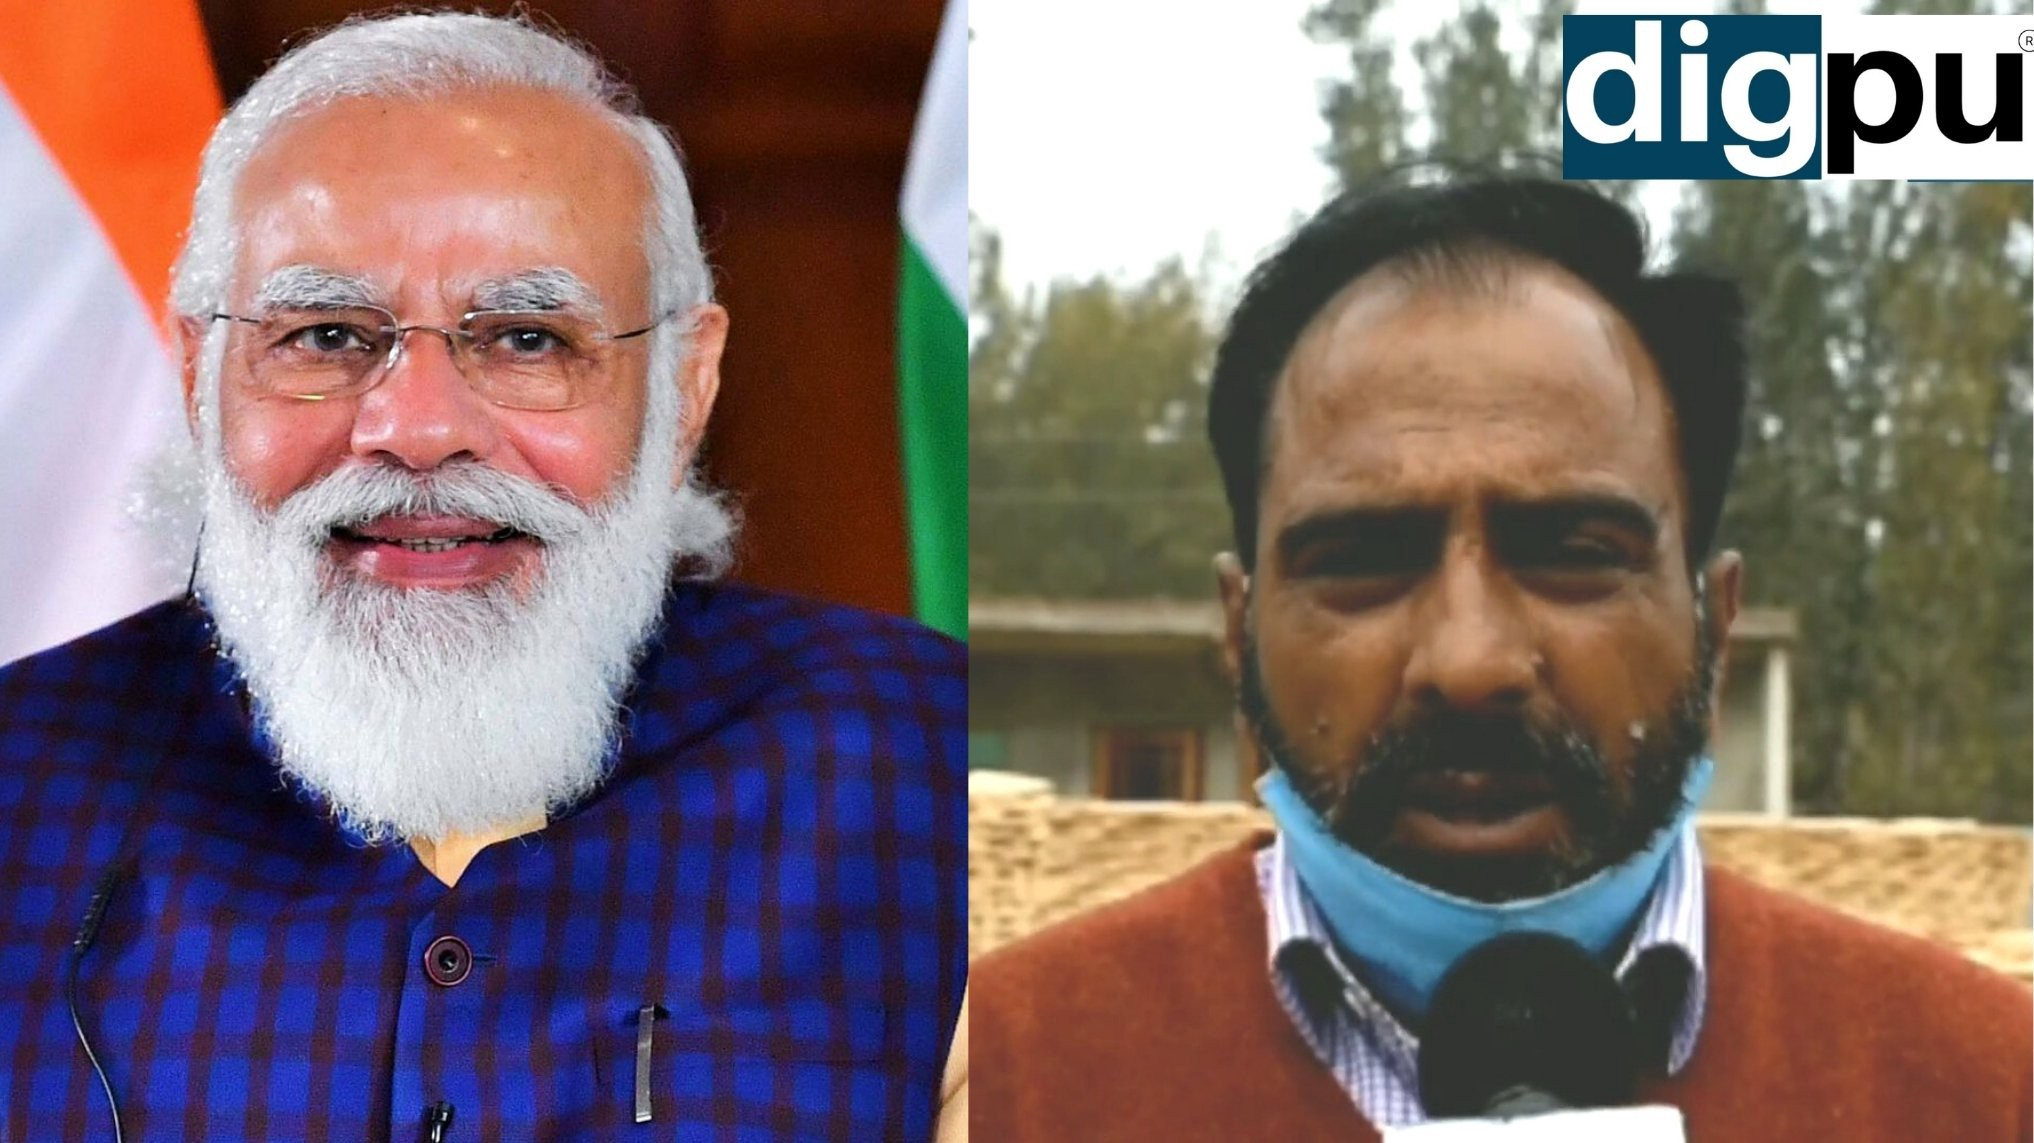 Manzoor Ahmad Allaie: Pulwama's pencil slat factory owner hailed by PM Modi